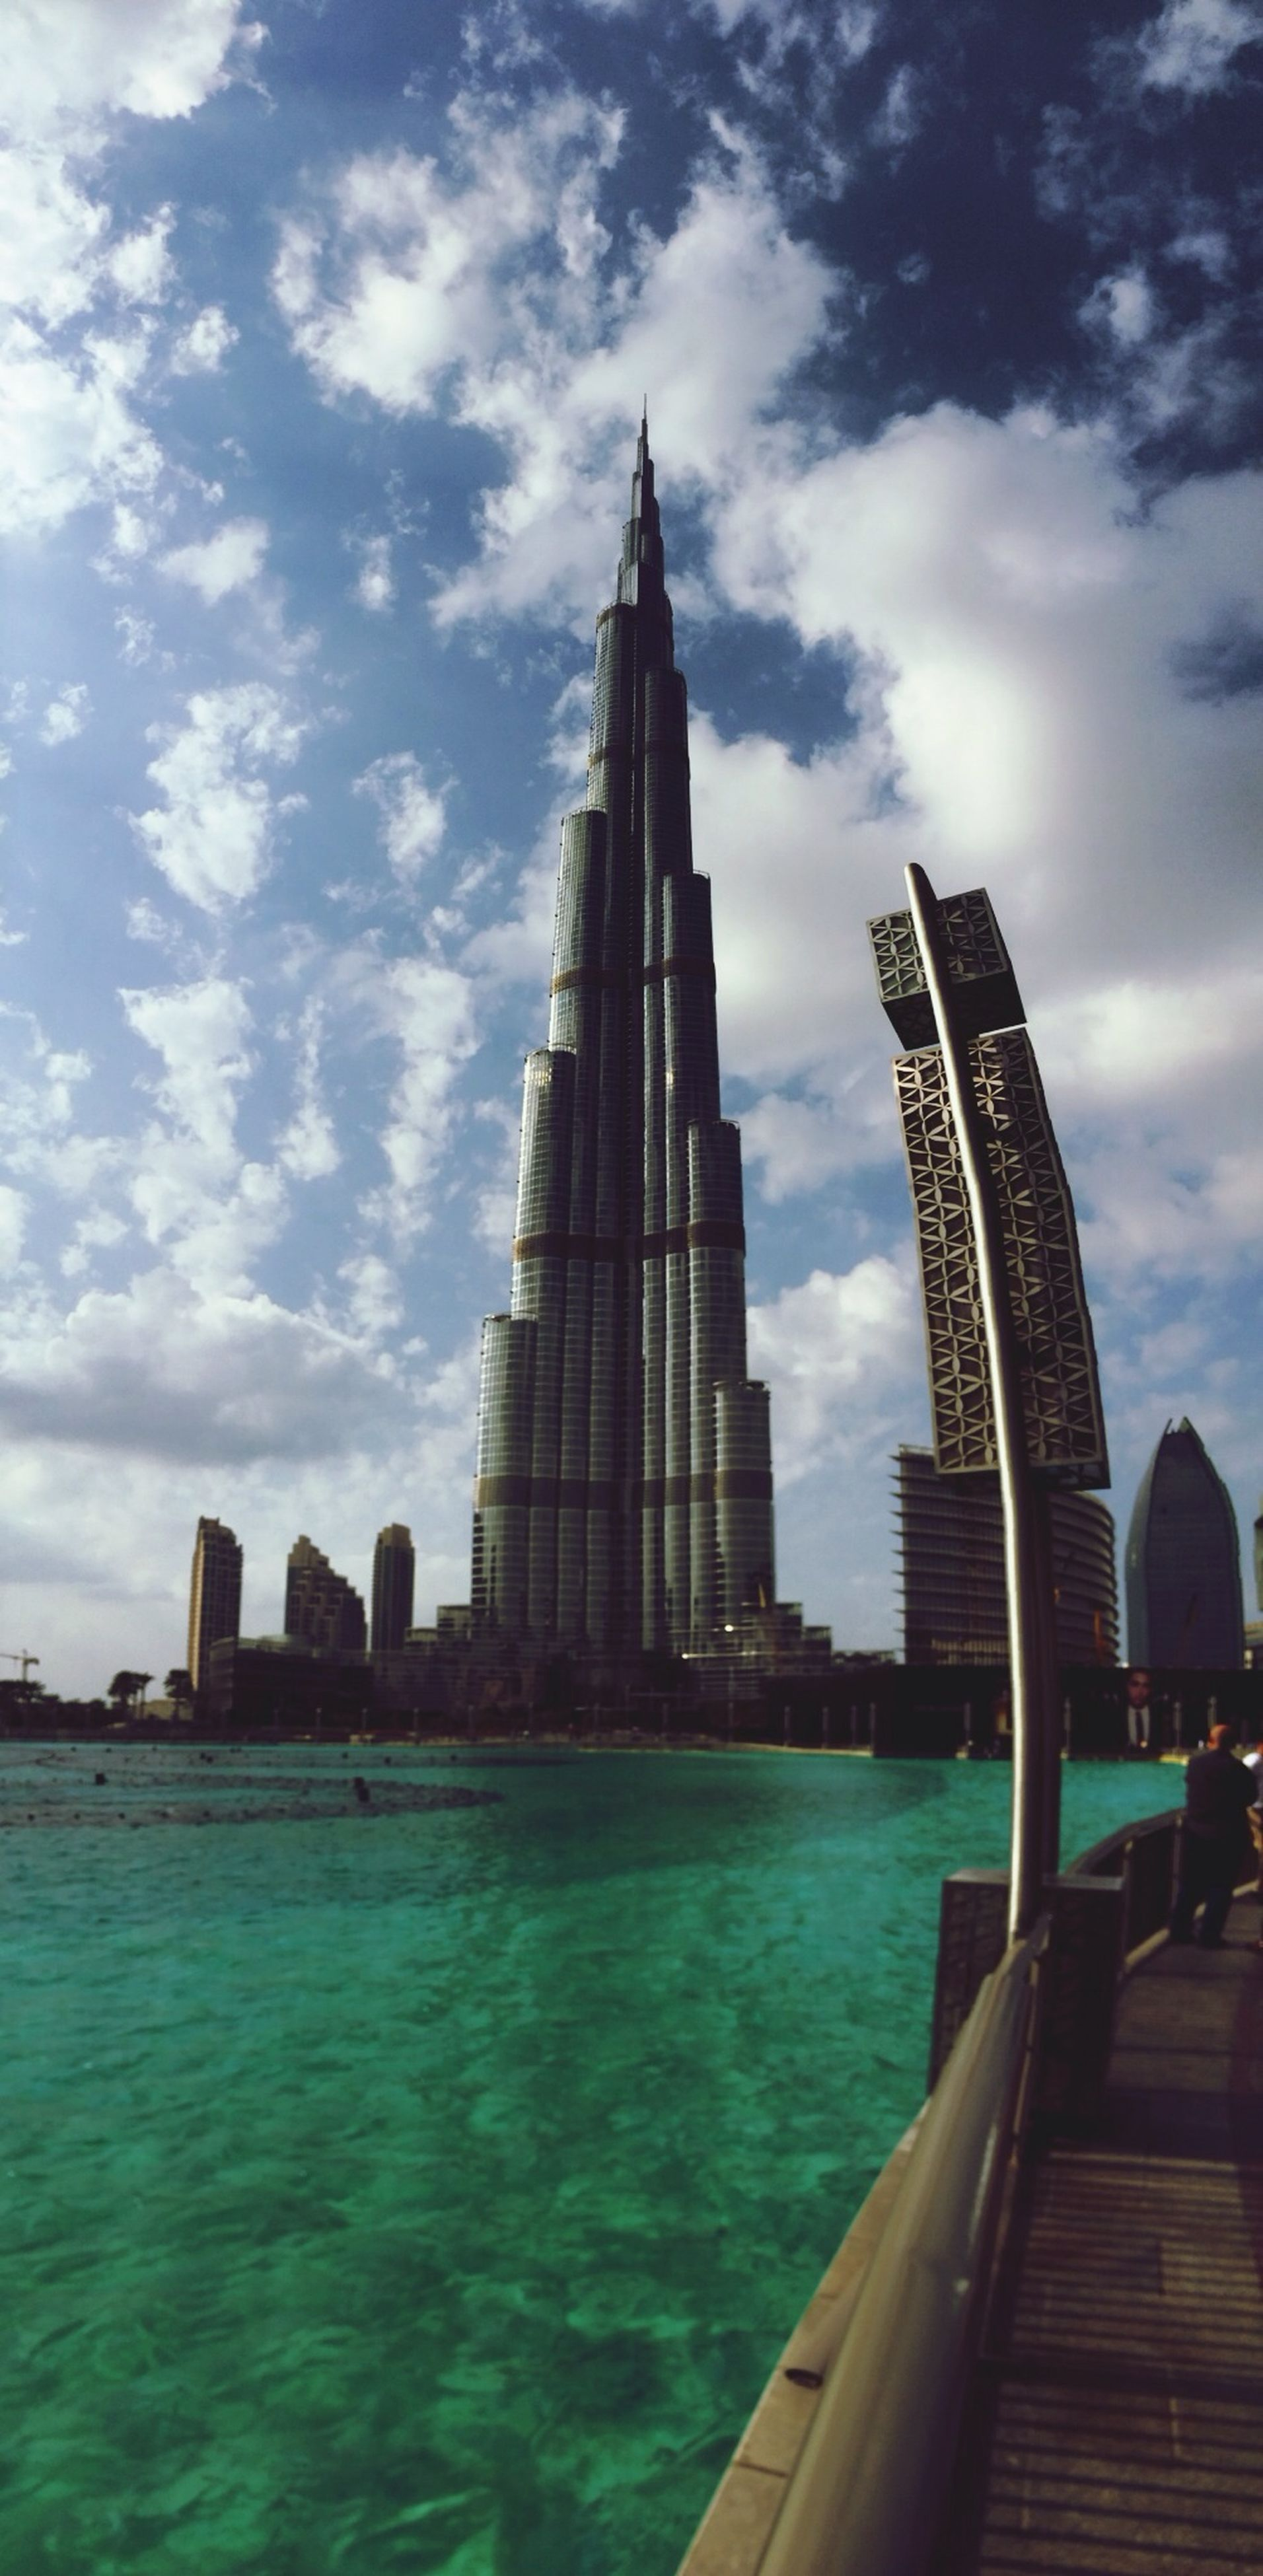 architecture, built structure, building exterior, sky, water, famous place, city, cloud - sky, travel destinations, tourism, international landmark, travel, tower, capital cities, cloud, tall - high, waterfront, skyscraper, cloudy, modern